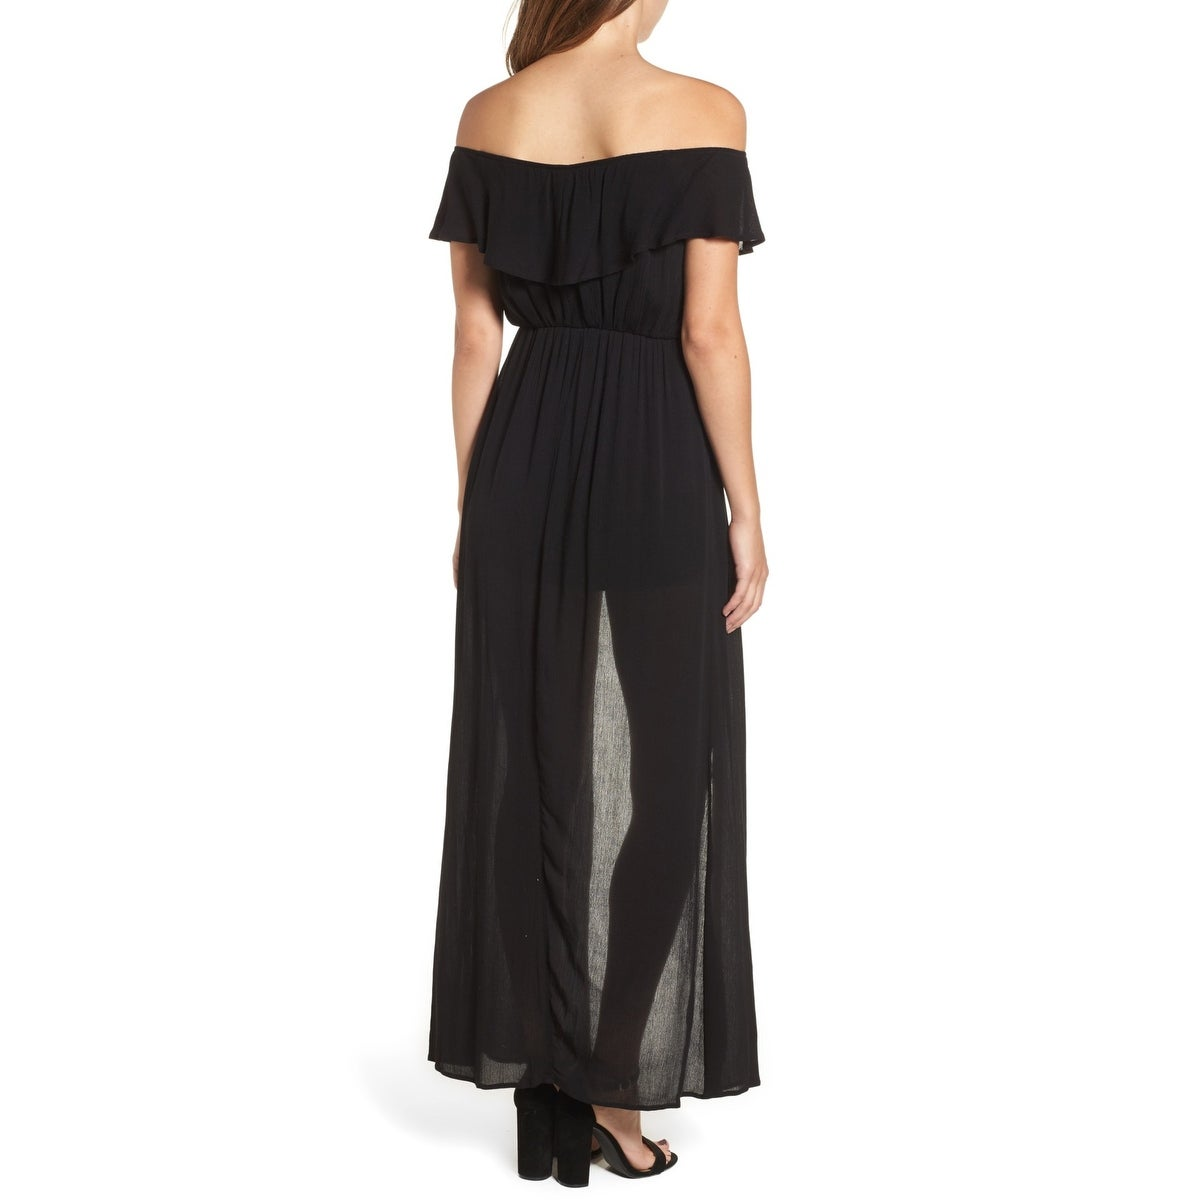 d76177f9643 Shop Dee Elly Black Womens Size Large L Off-Shoulder Gauze Maxi Romper -  Free Shipping On Orders Over  45 - Overstock - 22436536